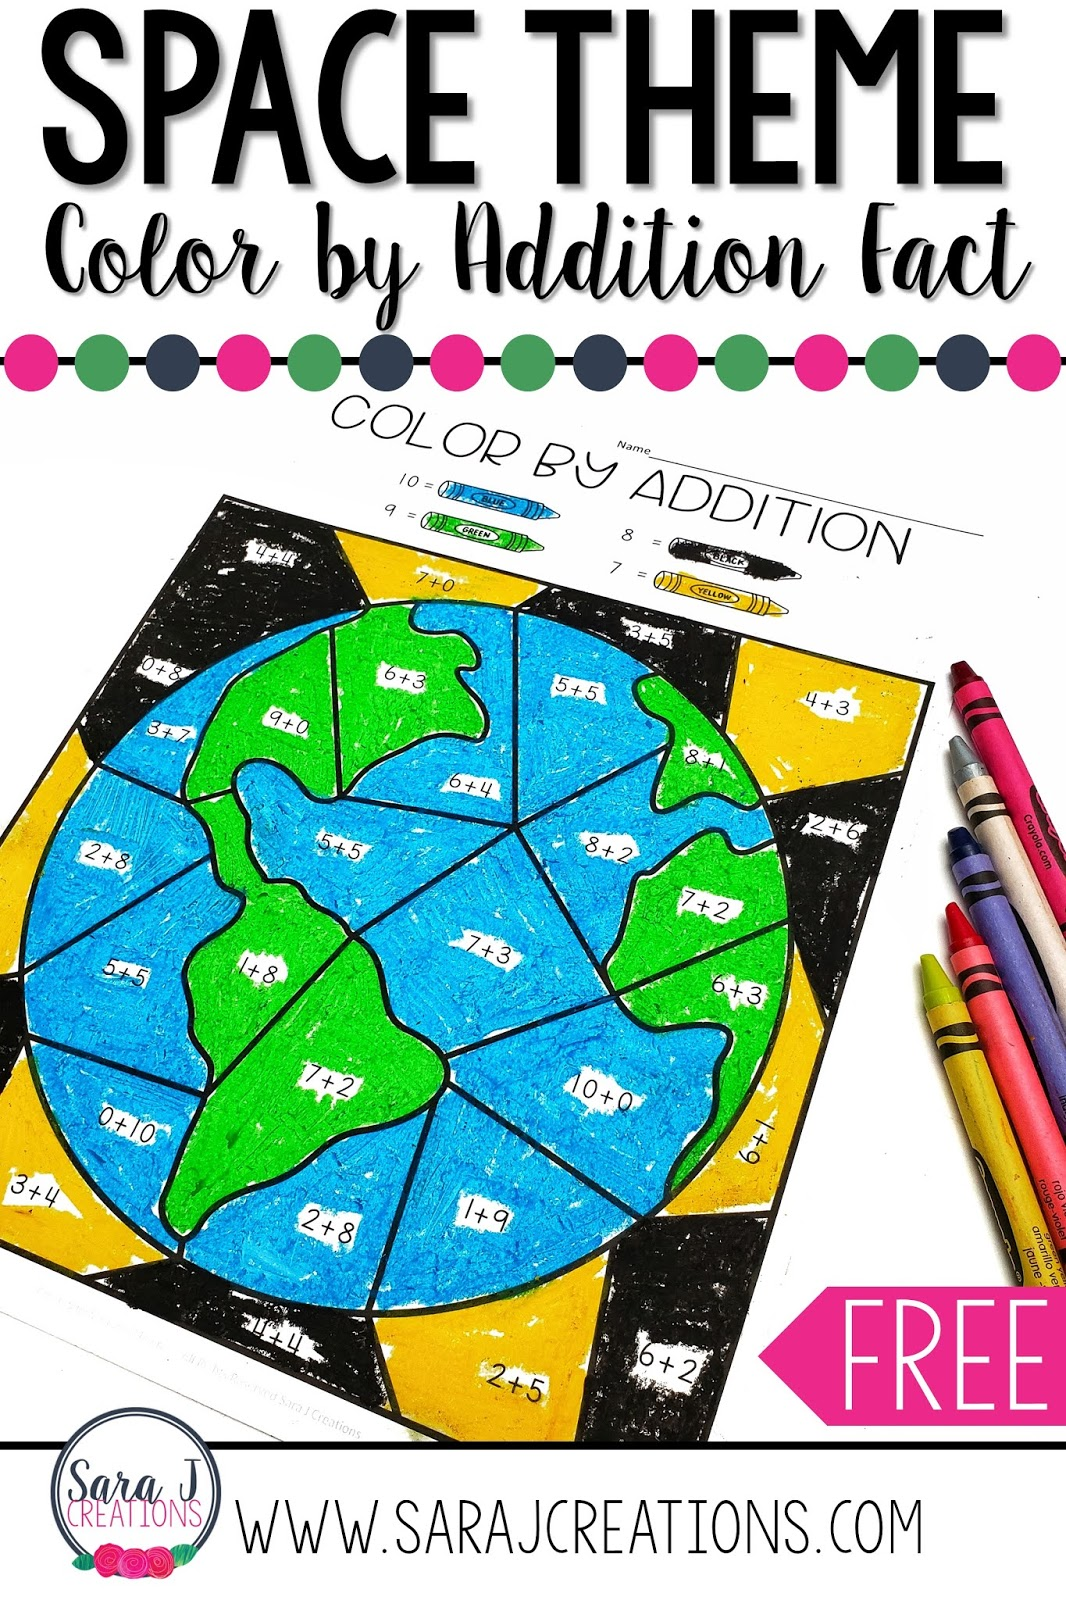 hight resolution of Color by Addition Free Space Themed Printable   Sara J Creations